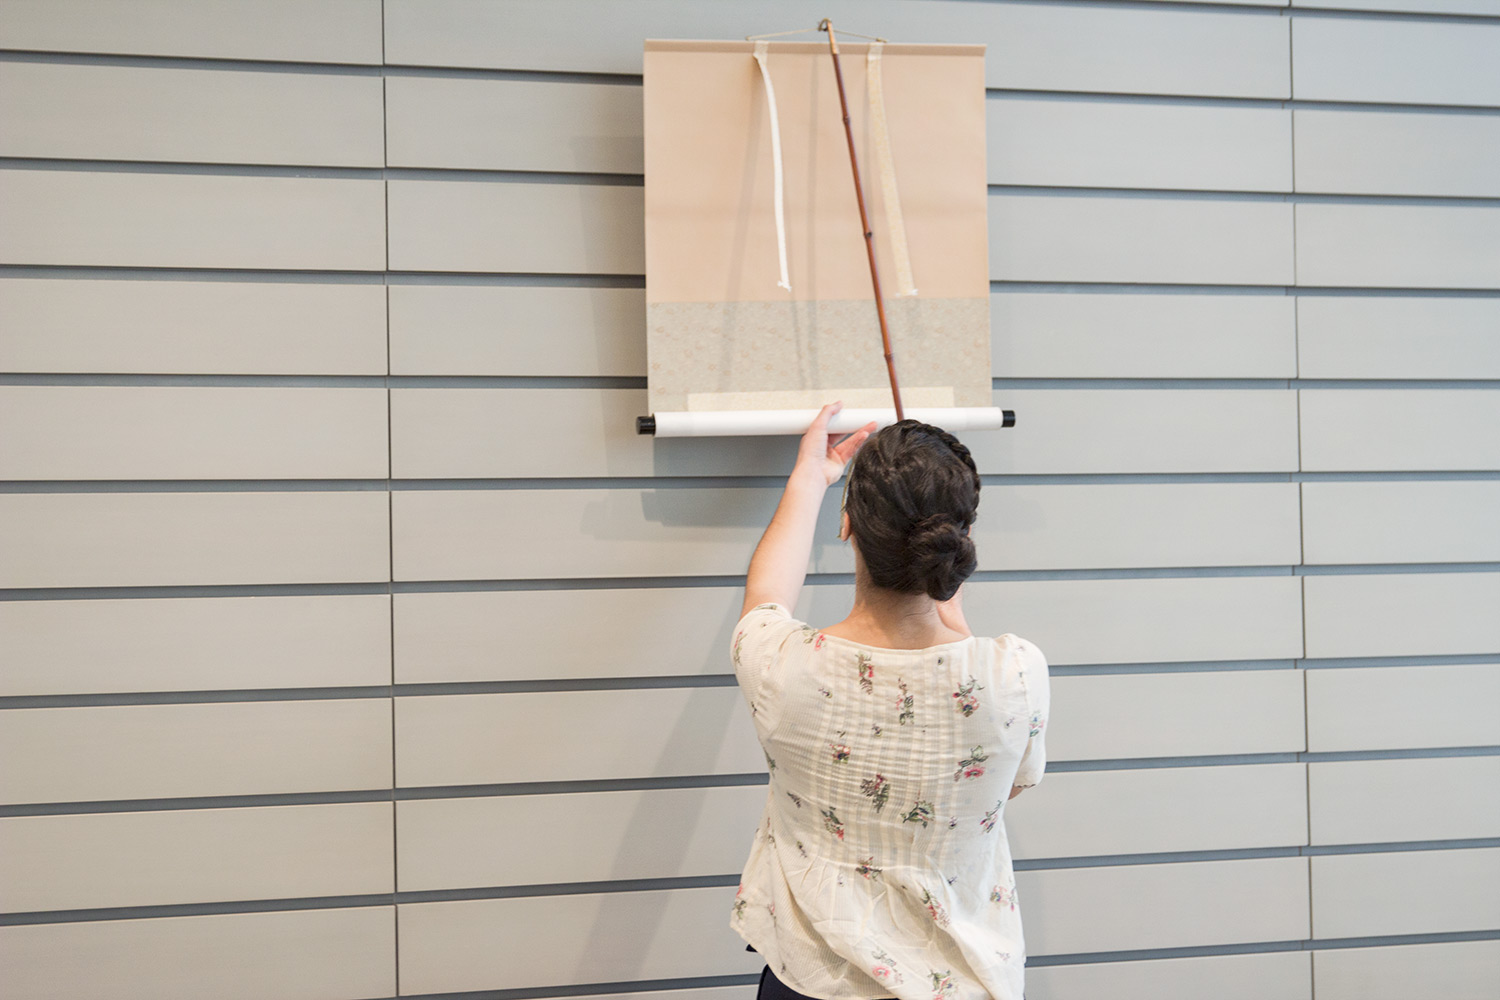 Sirrine unrolls a hanging scroll on the wall of an Art Study Center seminar room, in preparation for a visitor appointment.